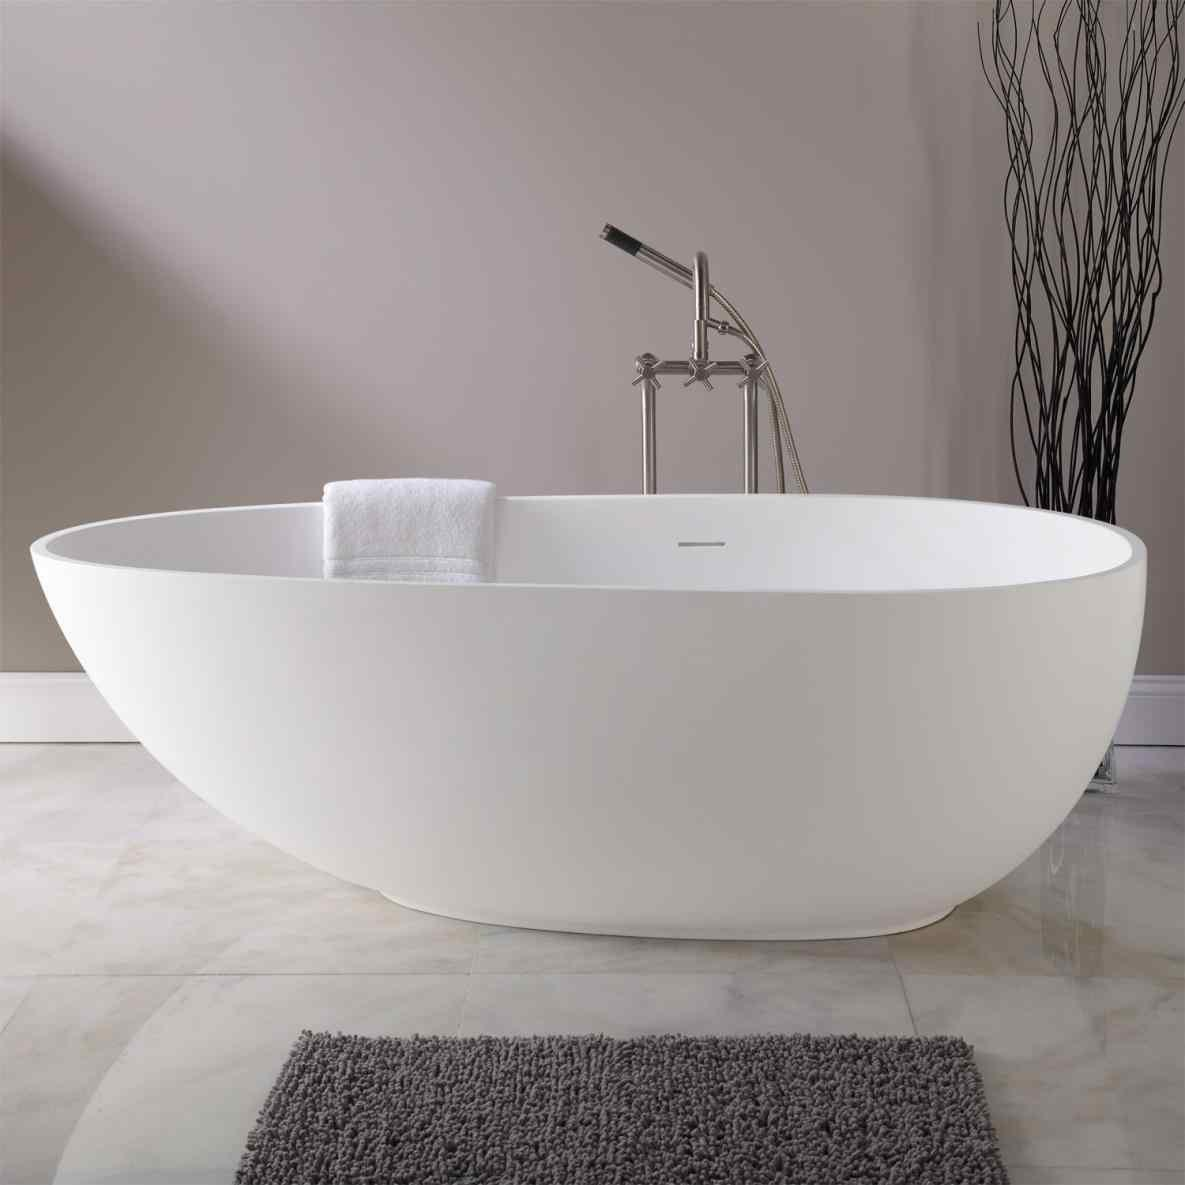 Small Round Bathtubs Home Maintenance Repair Geek